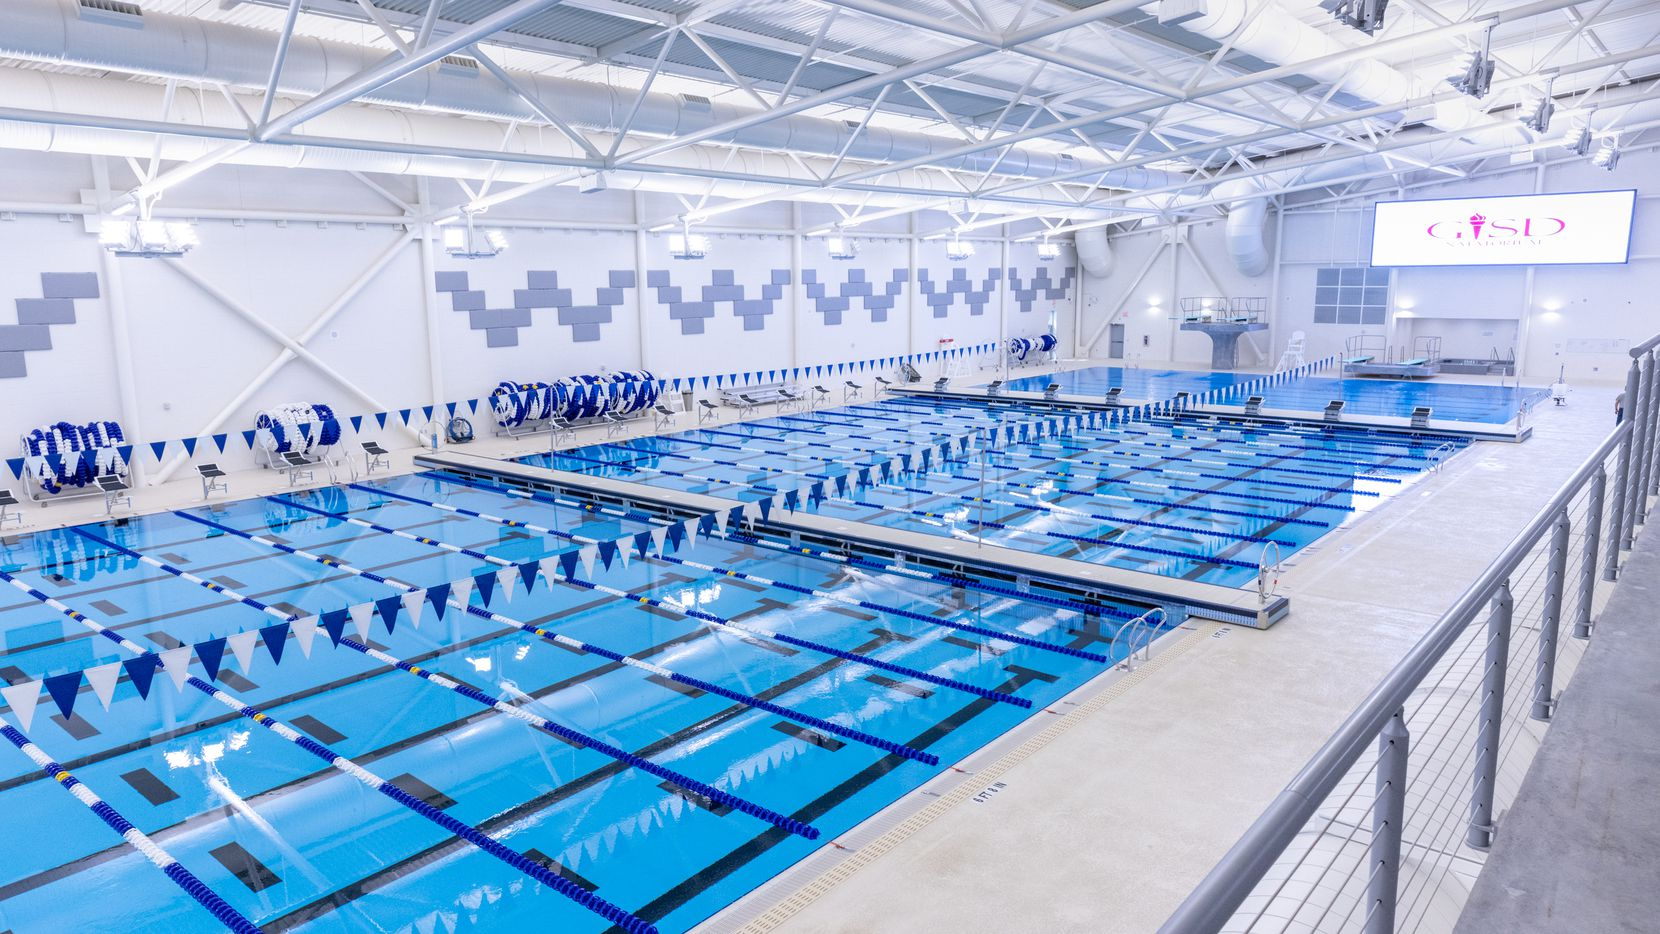 Construction on the Garland ISD Natatorium was completed in November 2020.